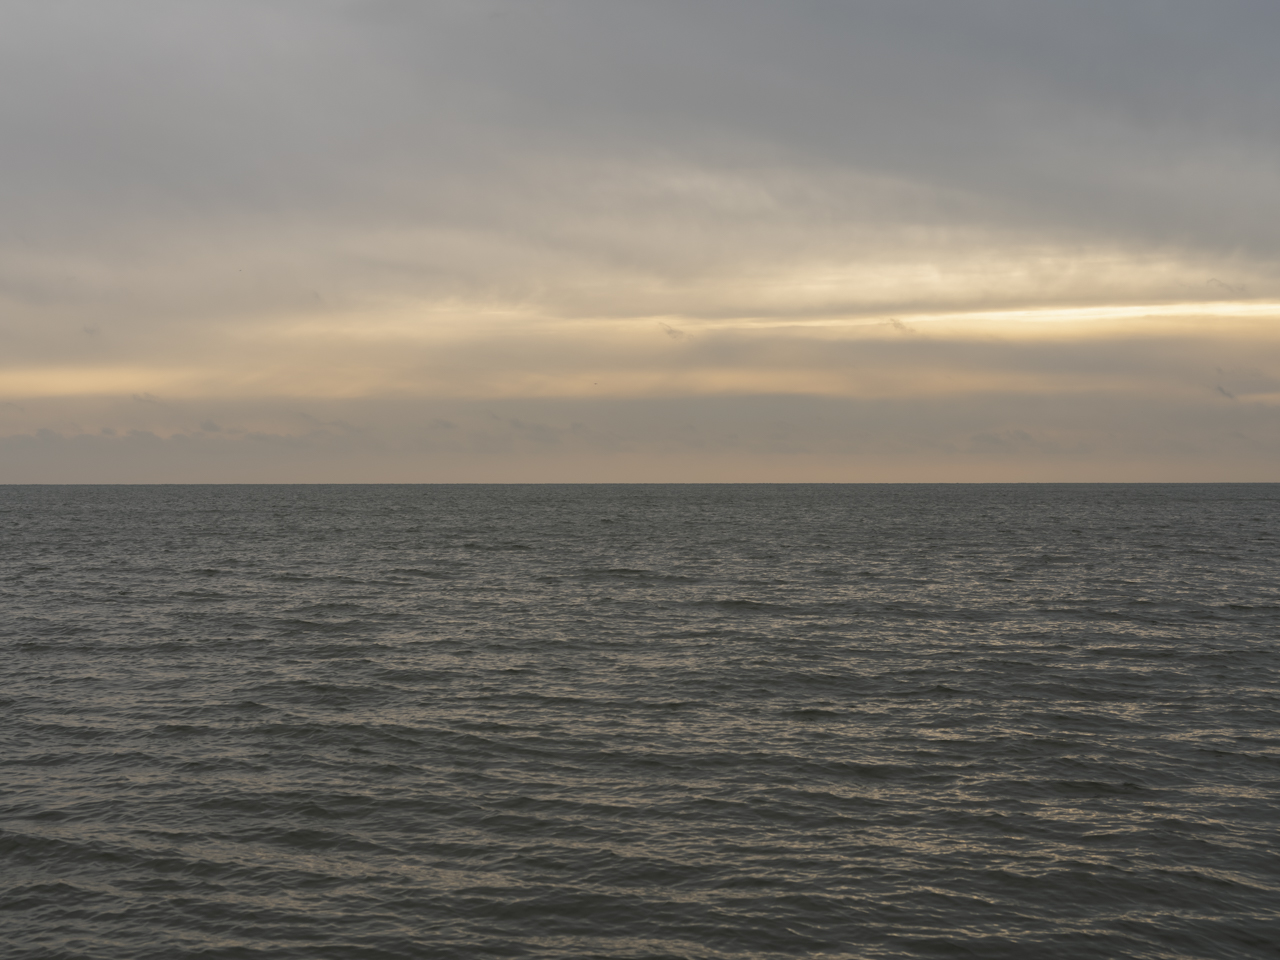 yellow and grays fill a cloudy sky where the sun is pushing through from behind, but not fully being shown, the lake waters are a strange gray brown and green color